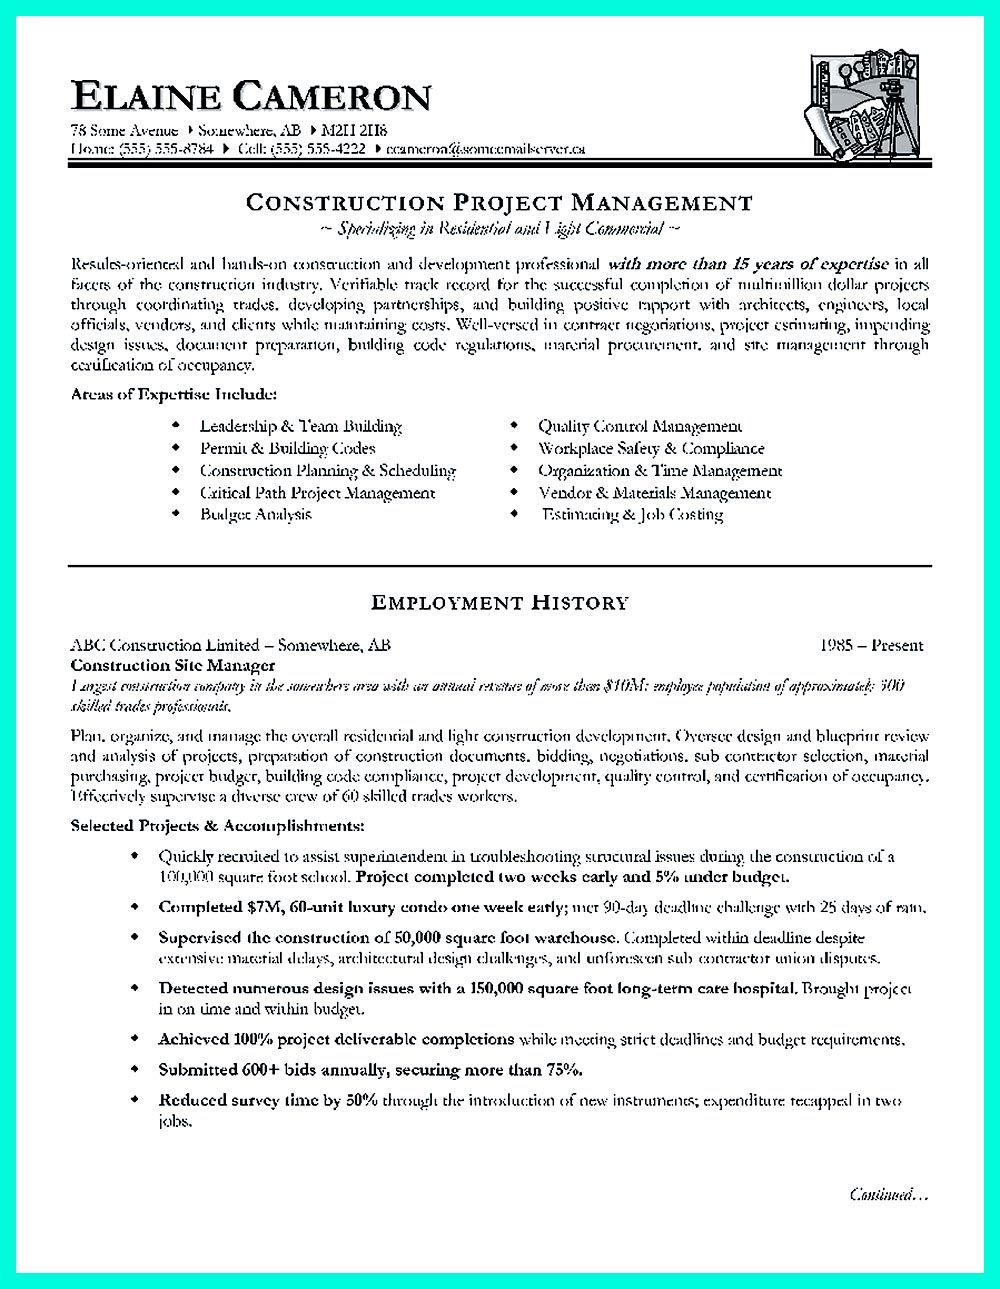 High Quality Construction Project Manager Resume For Experienced One Must Be Made With  Professional Profile, Education, Skills And Abilities Including Employment  H... ...